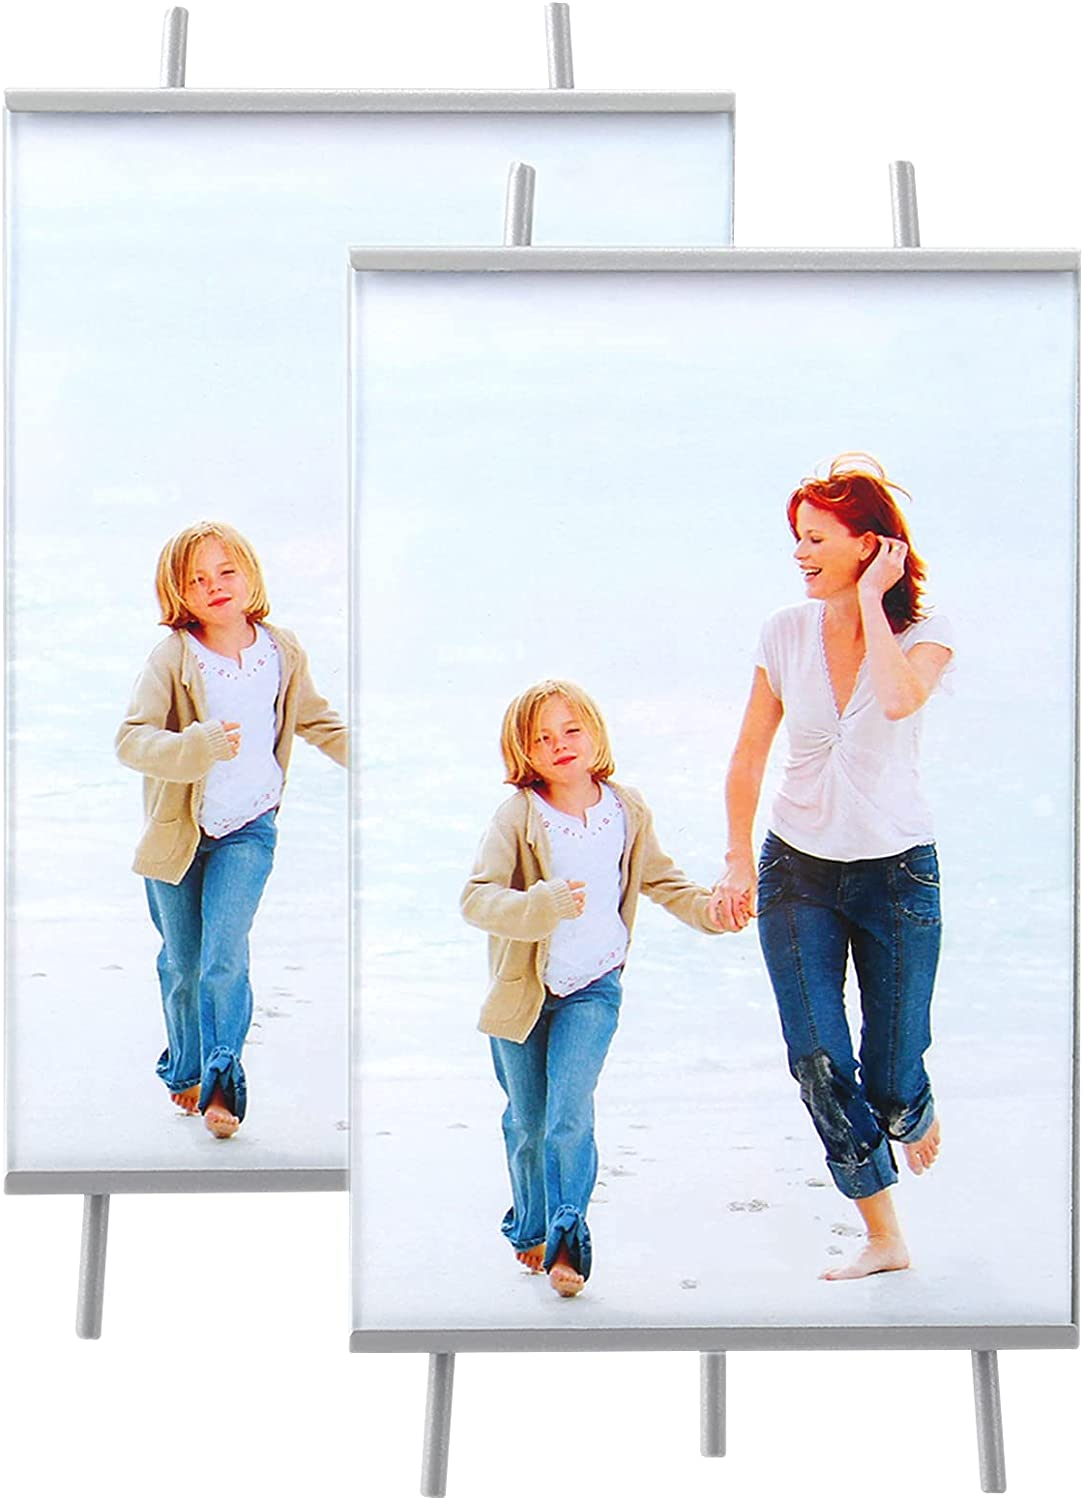 Evron High-Definition Glass Photo Frame with Modern and Simple D